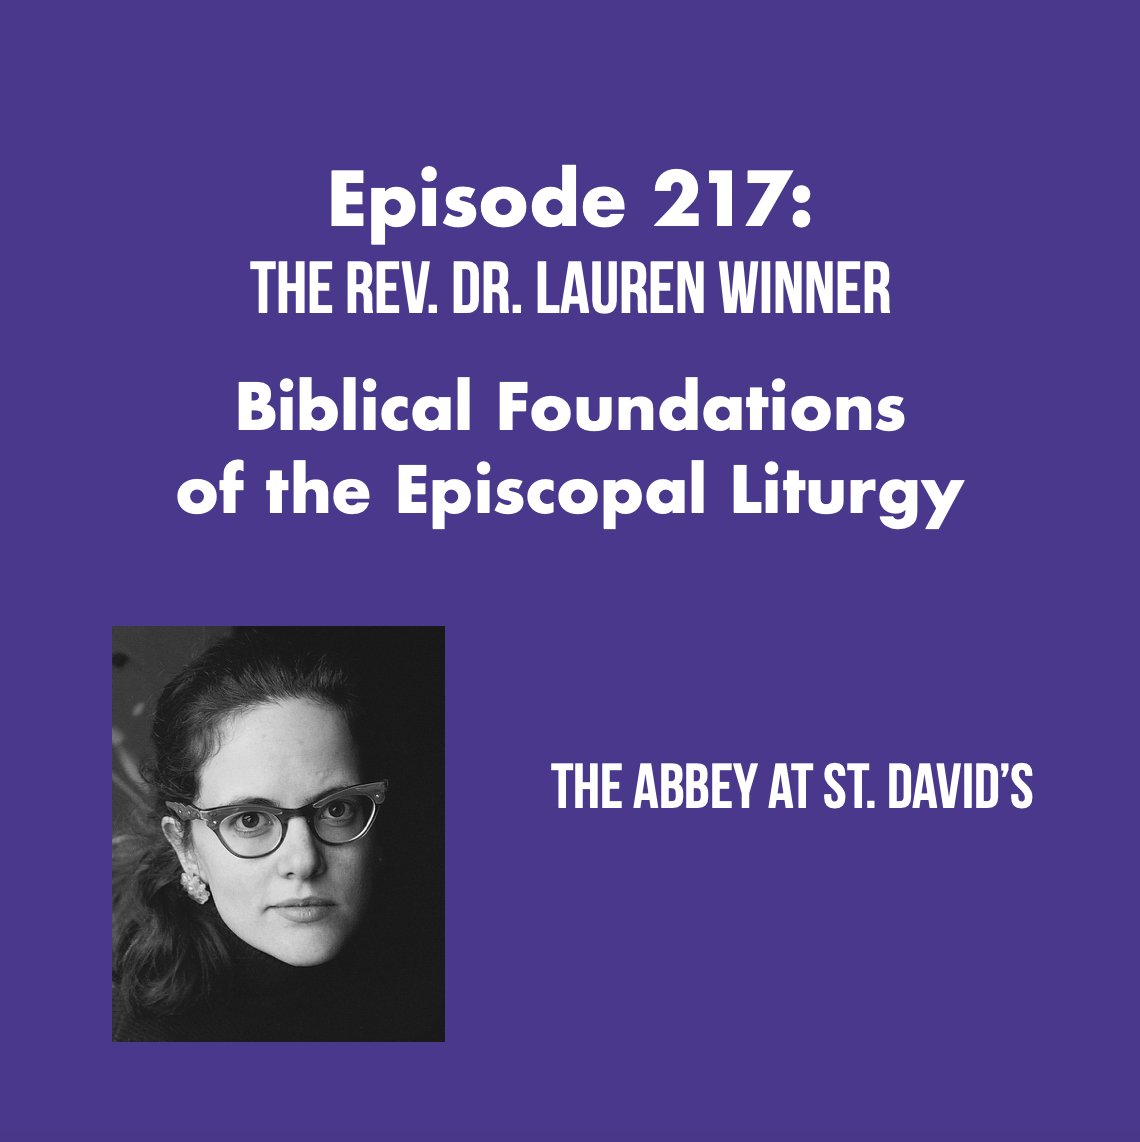 Episode 217: Biblical Foundations of the Episcopal Liturgy with The Rev. Dr. Lauren Winner